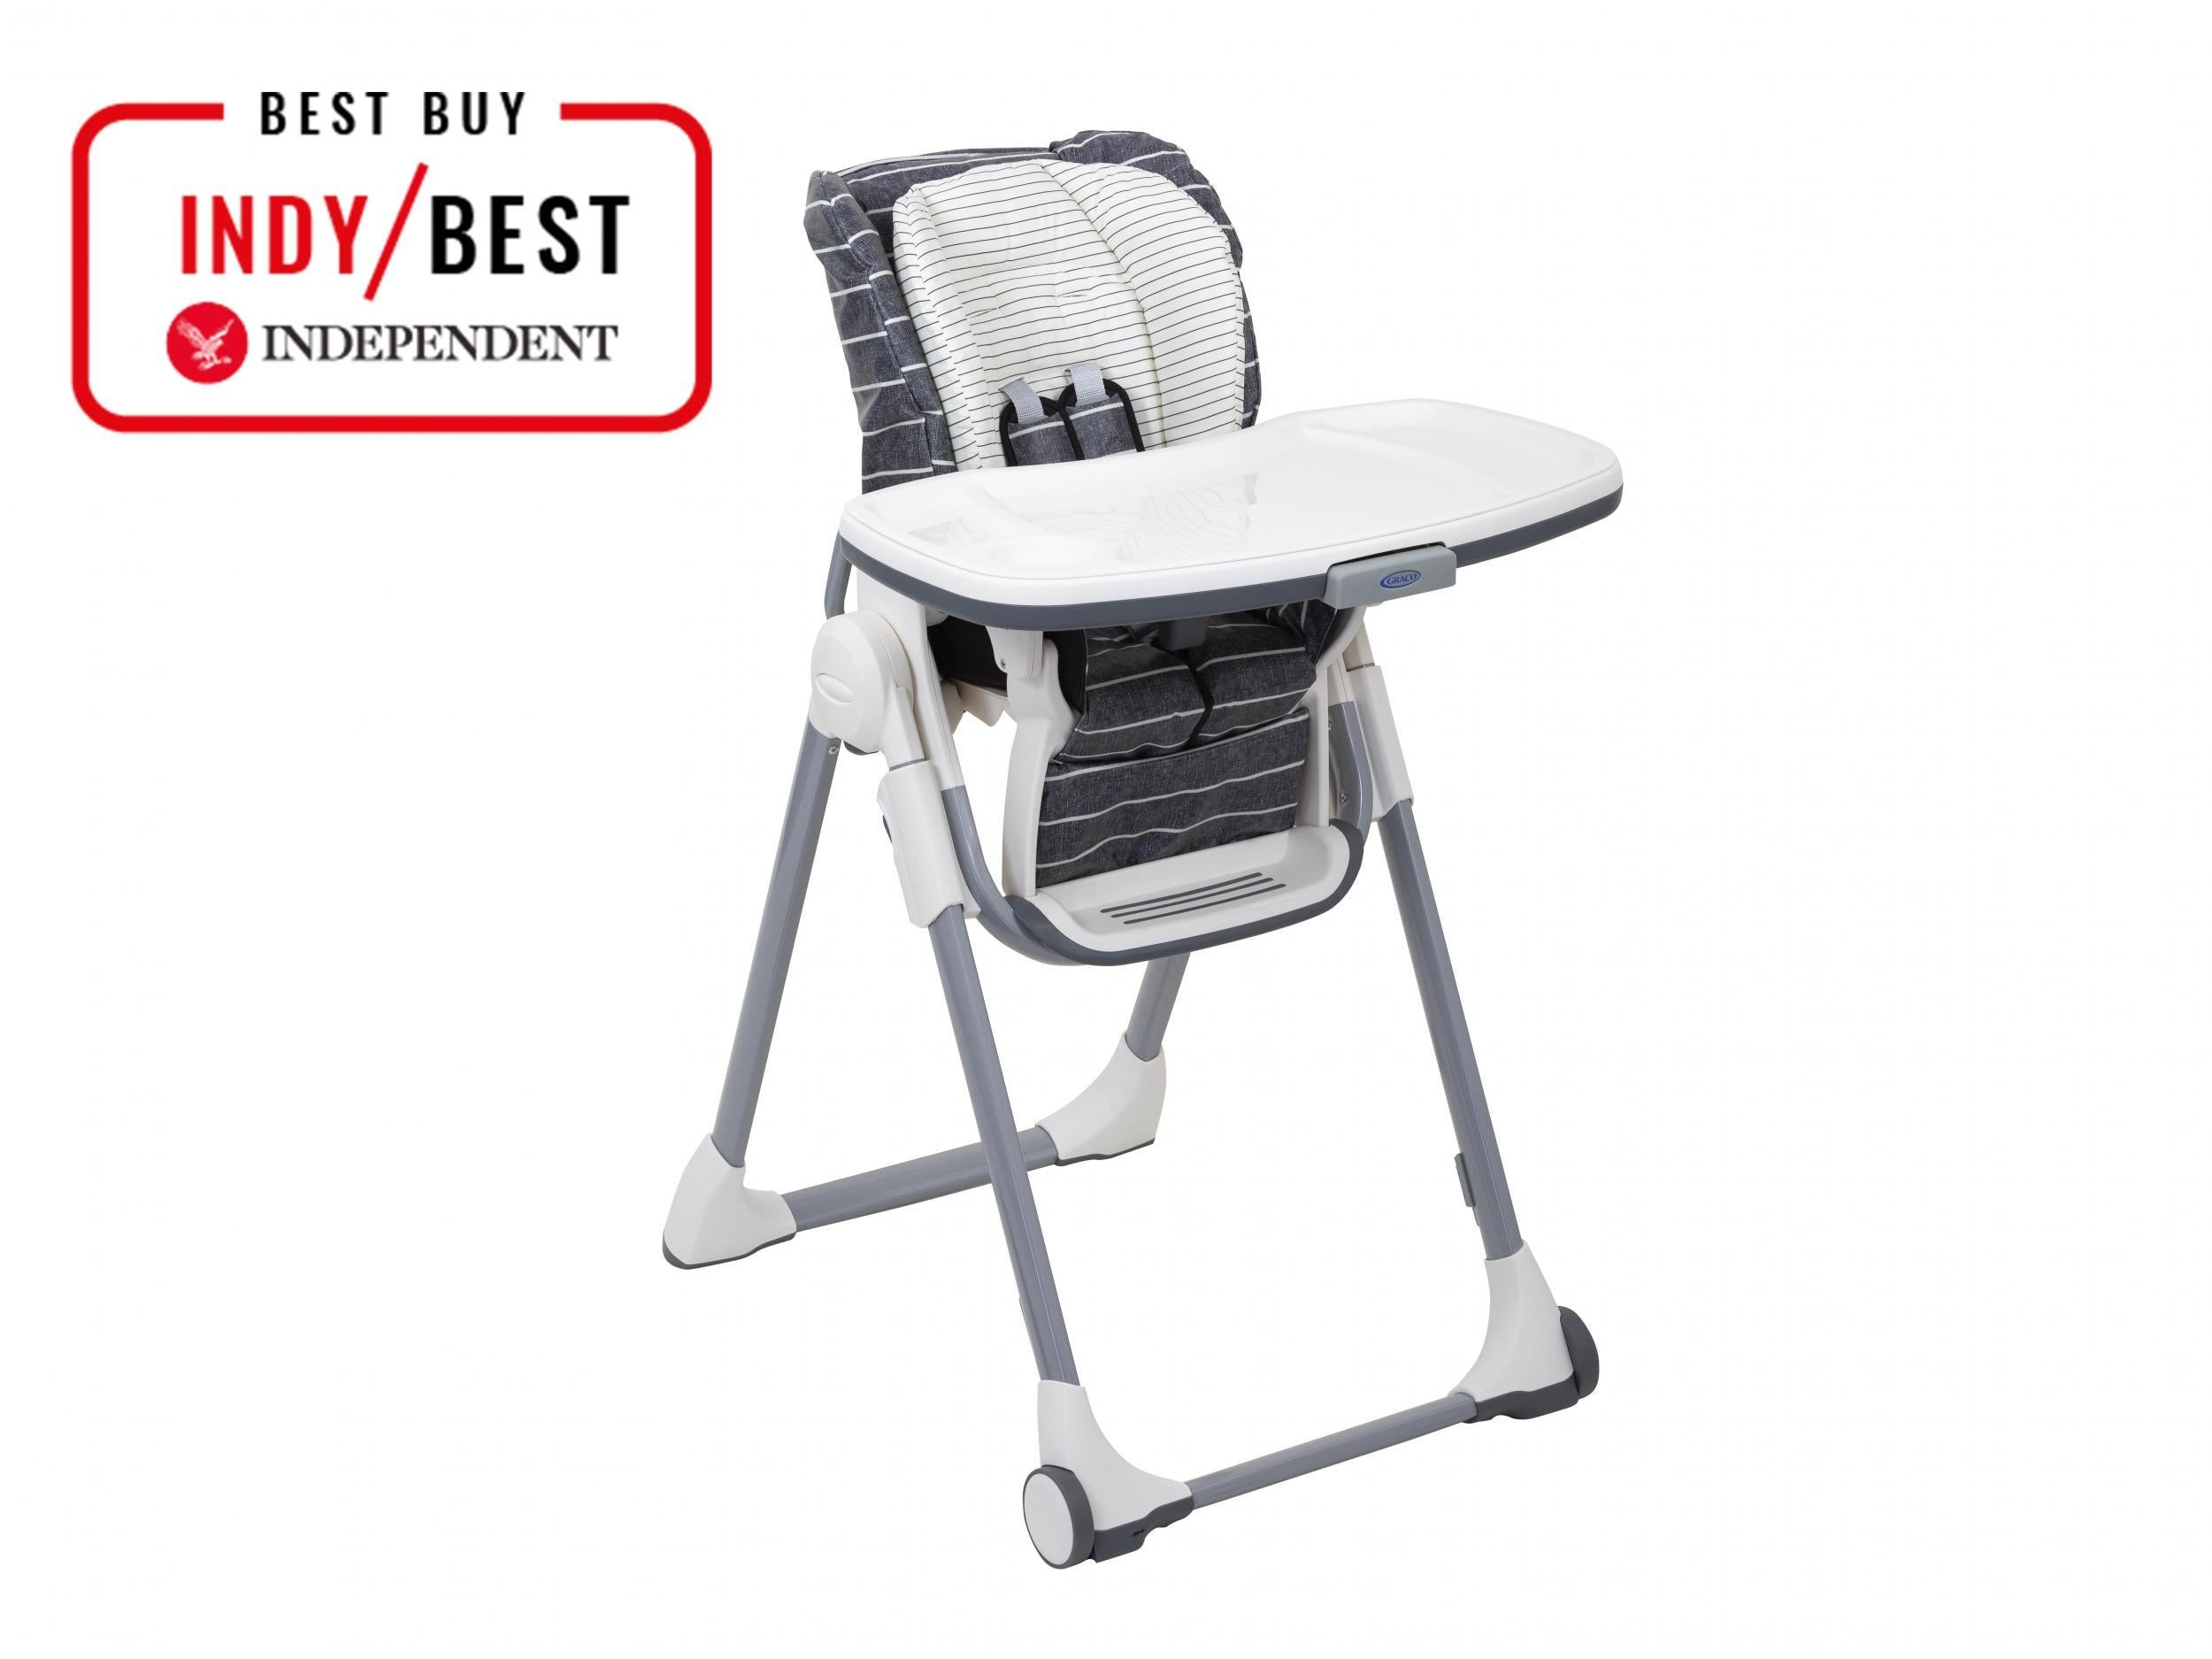 POUCH baby kids Adjustable folding highchair feeding chair 3 levels food grade